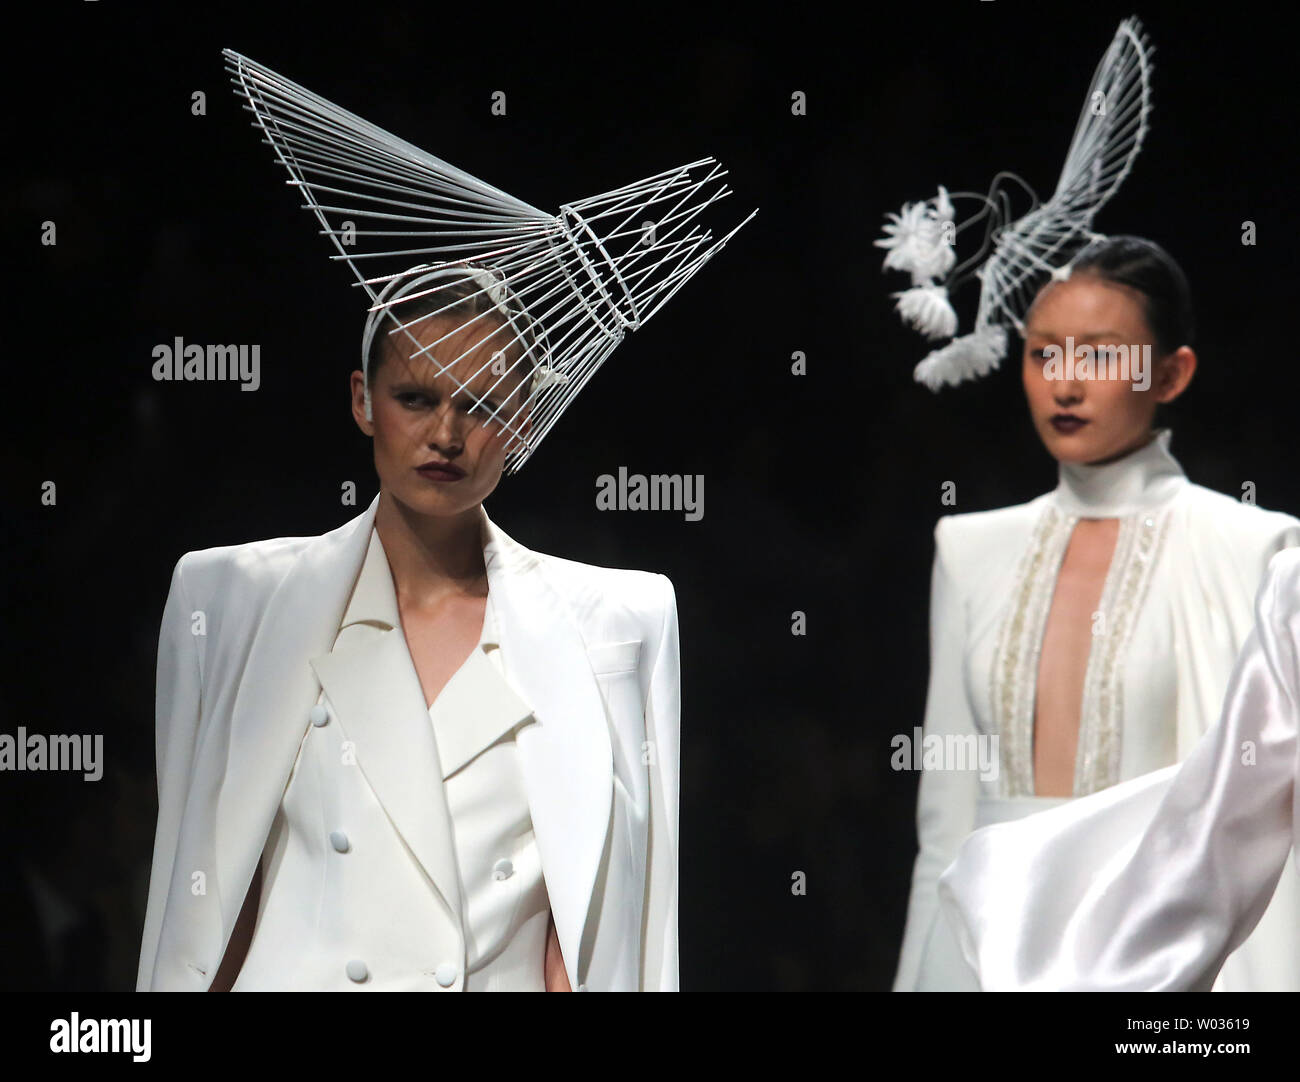 Chinese And European Models Wear Clothing From The Maryma 2017 Collection During China S International Fashion Week In Beijing On October 29 2016 Chinese Fashion Designers Are Becoming An International Force With Both